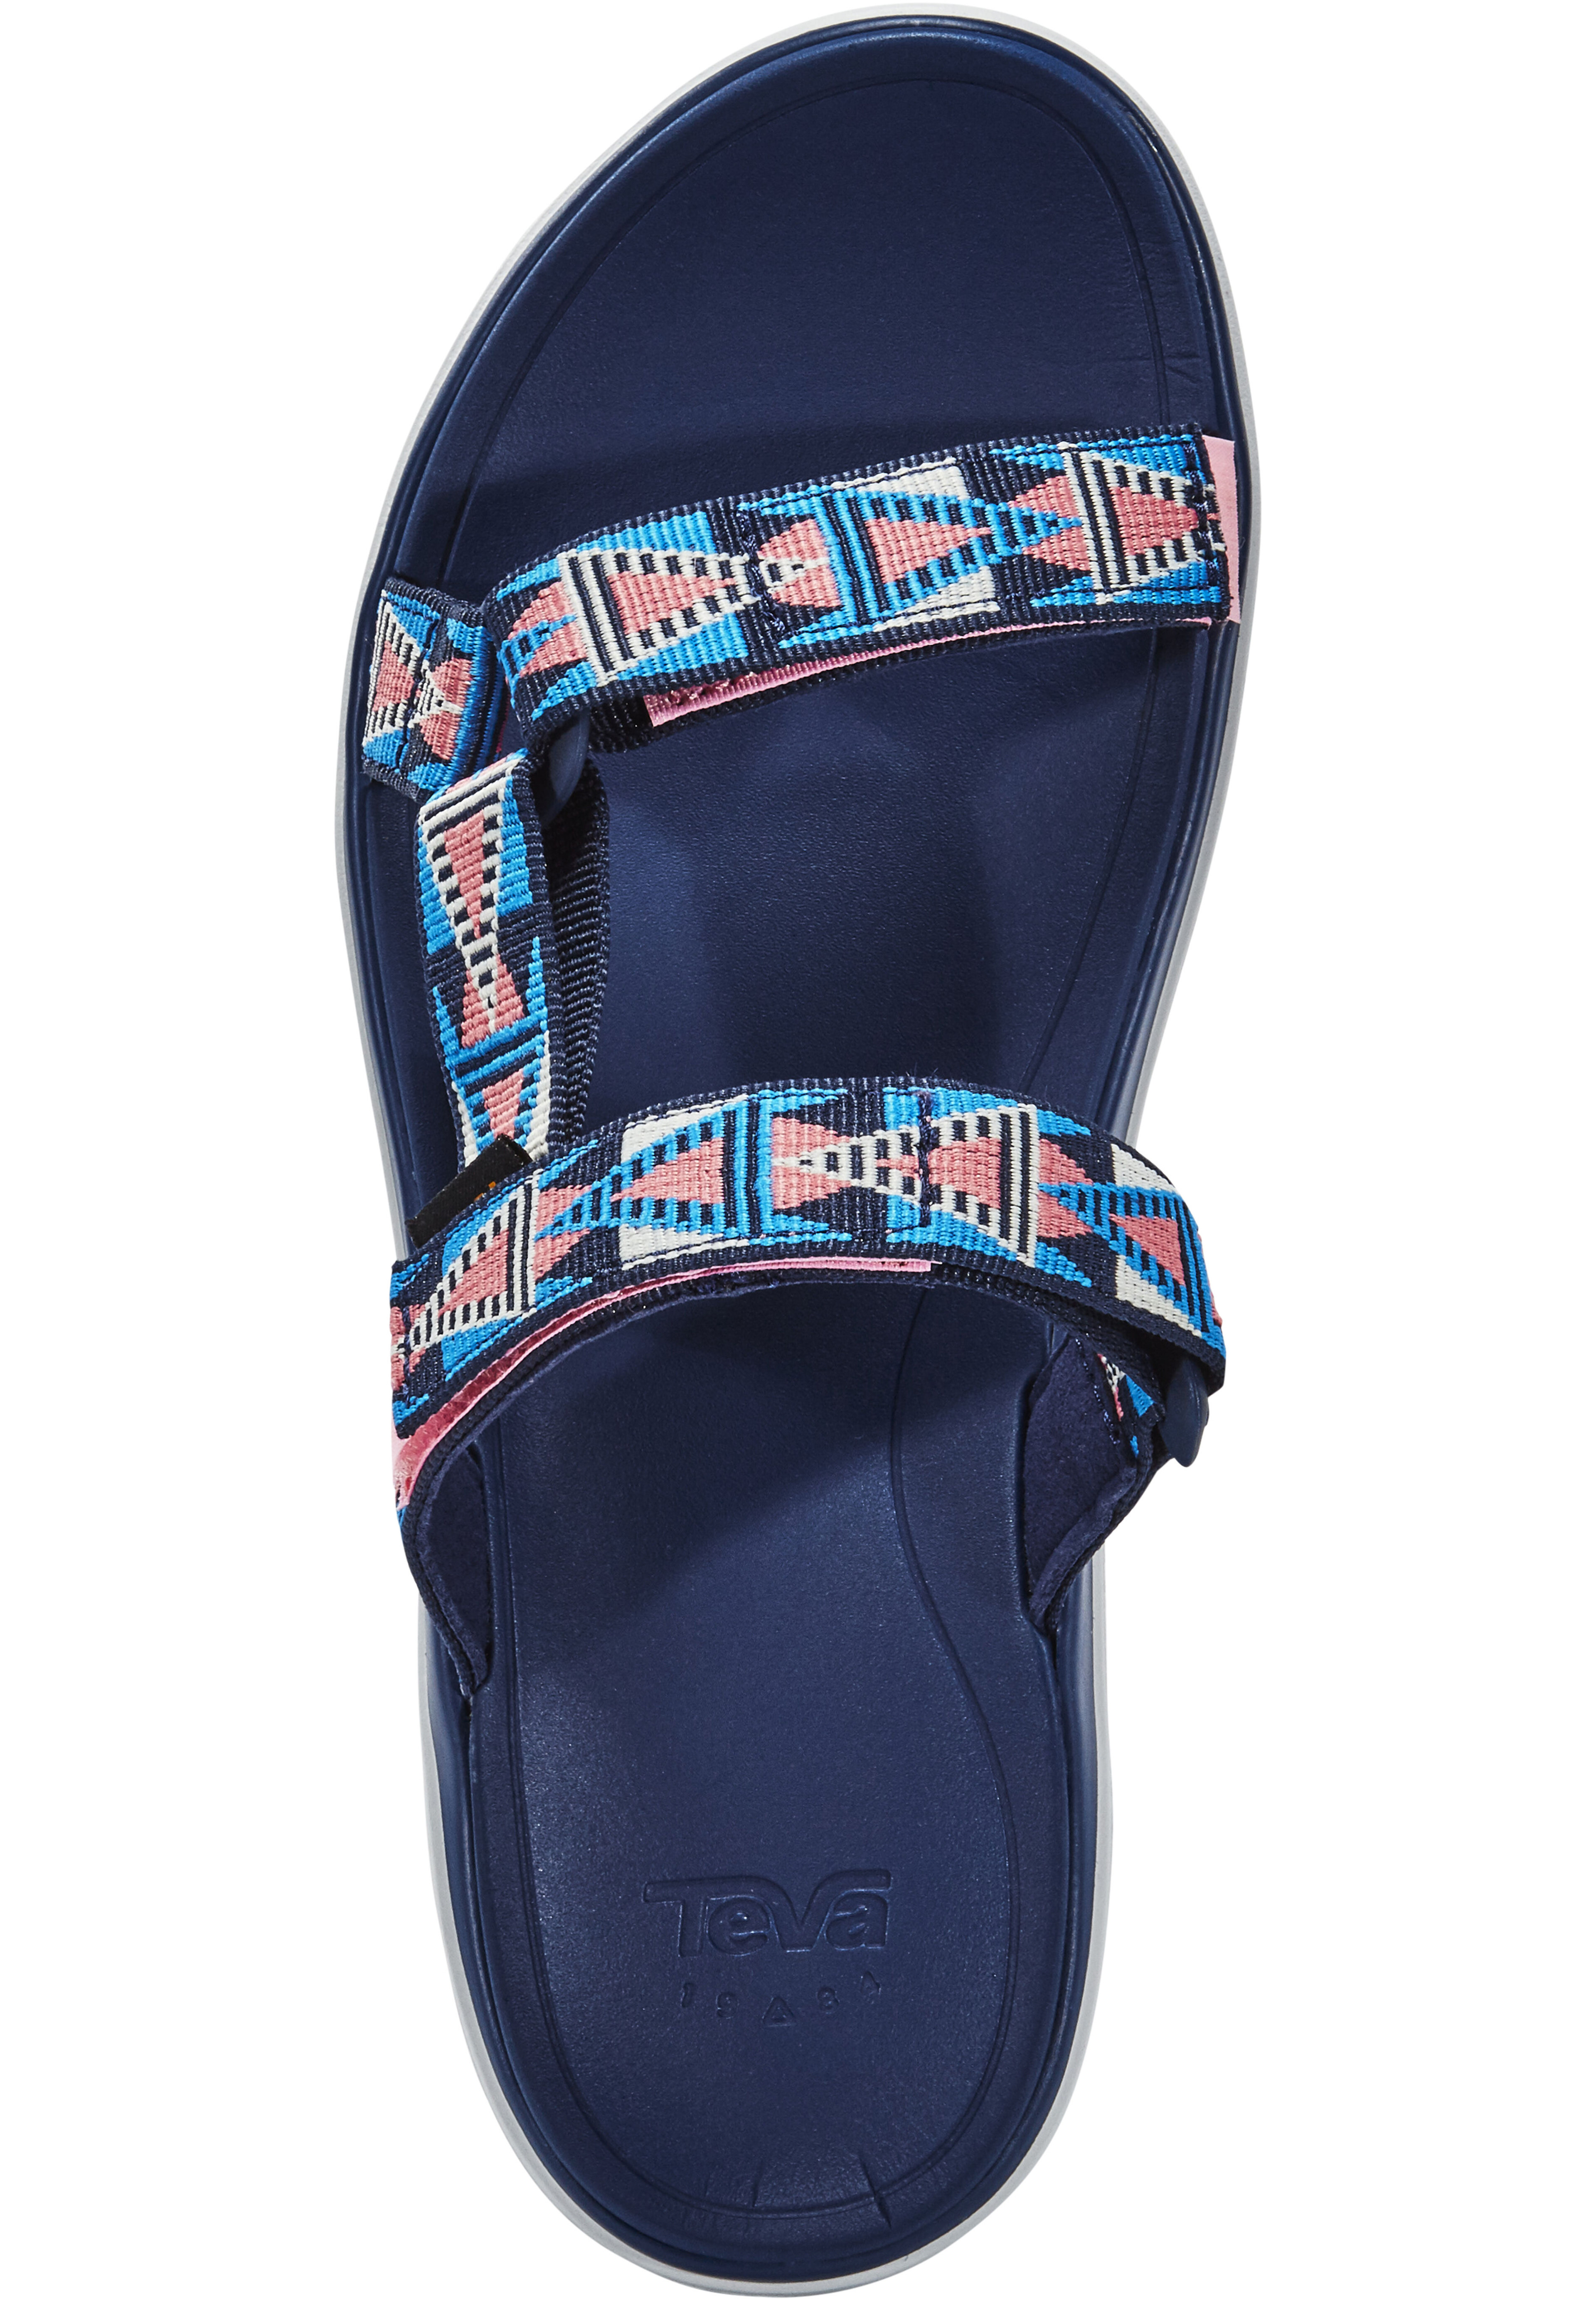 672651a66696 Teva Terra-Float Lexi Sandals Women pink blue at Addnature.co.uk